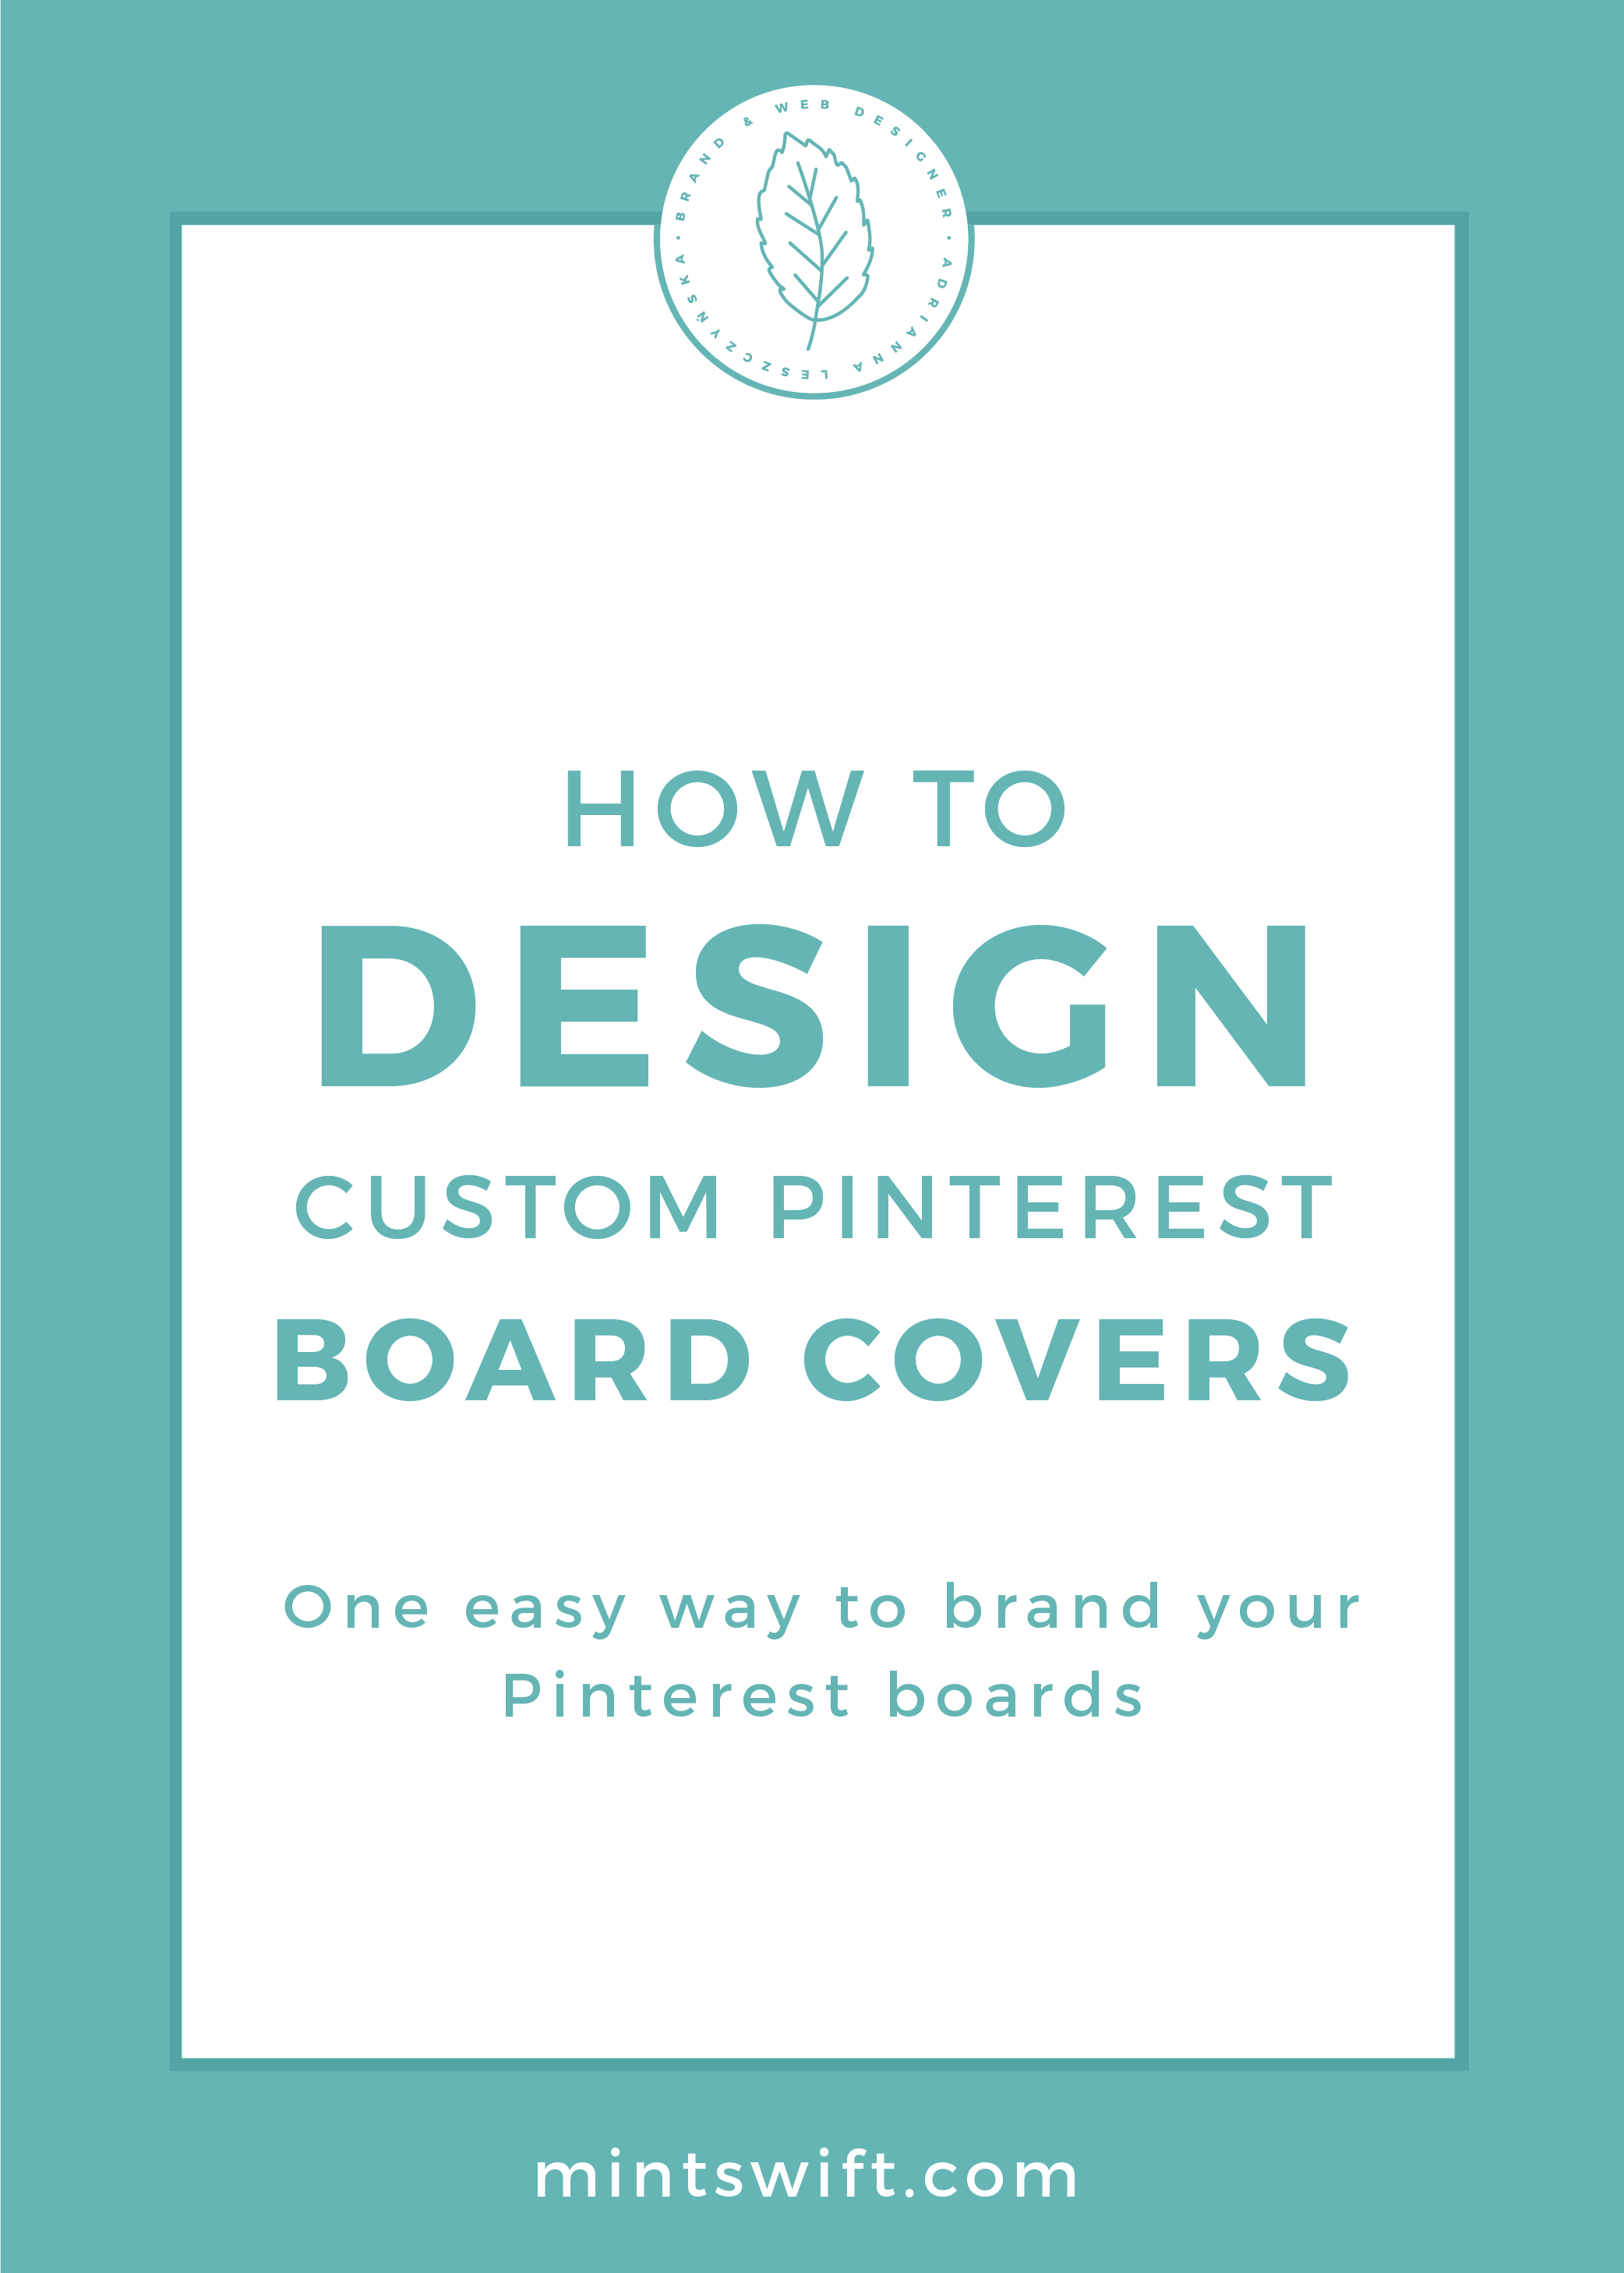 How to Design Custom Pinterest Board Covers. One Easy Way to Brand Your Pinterest Boards by MintSwift